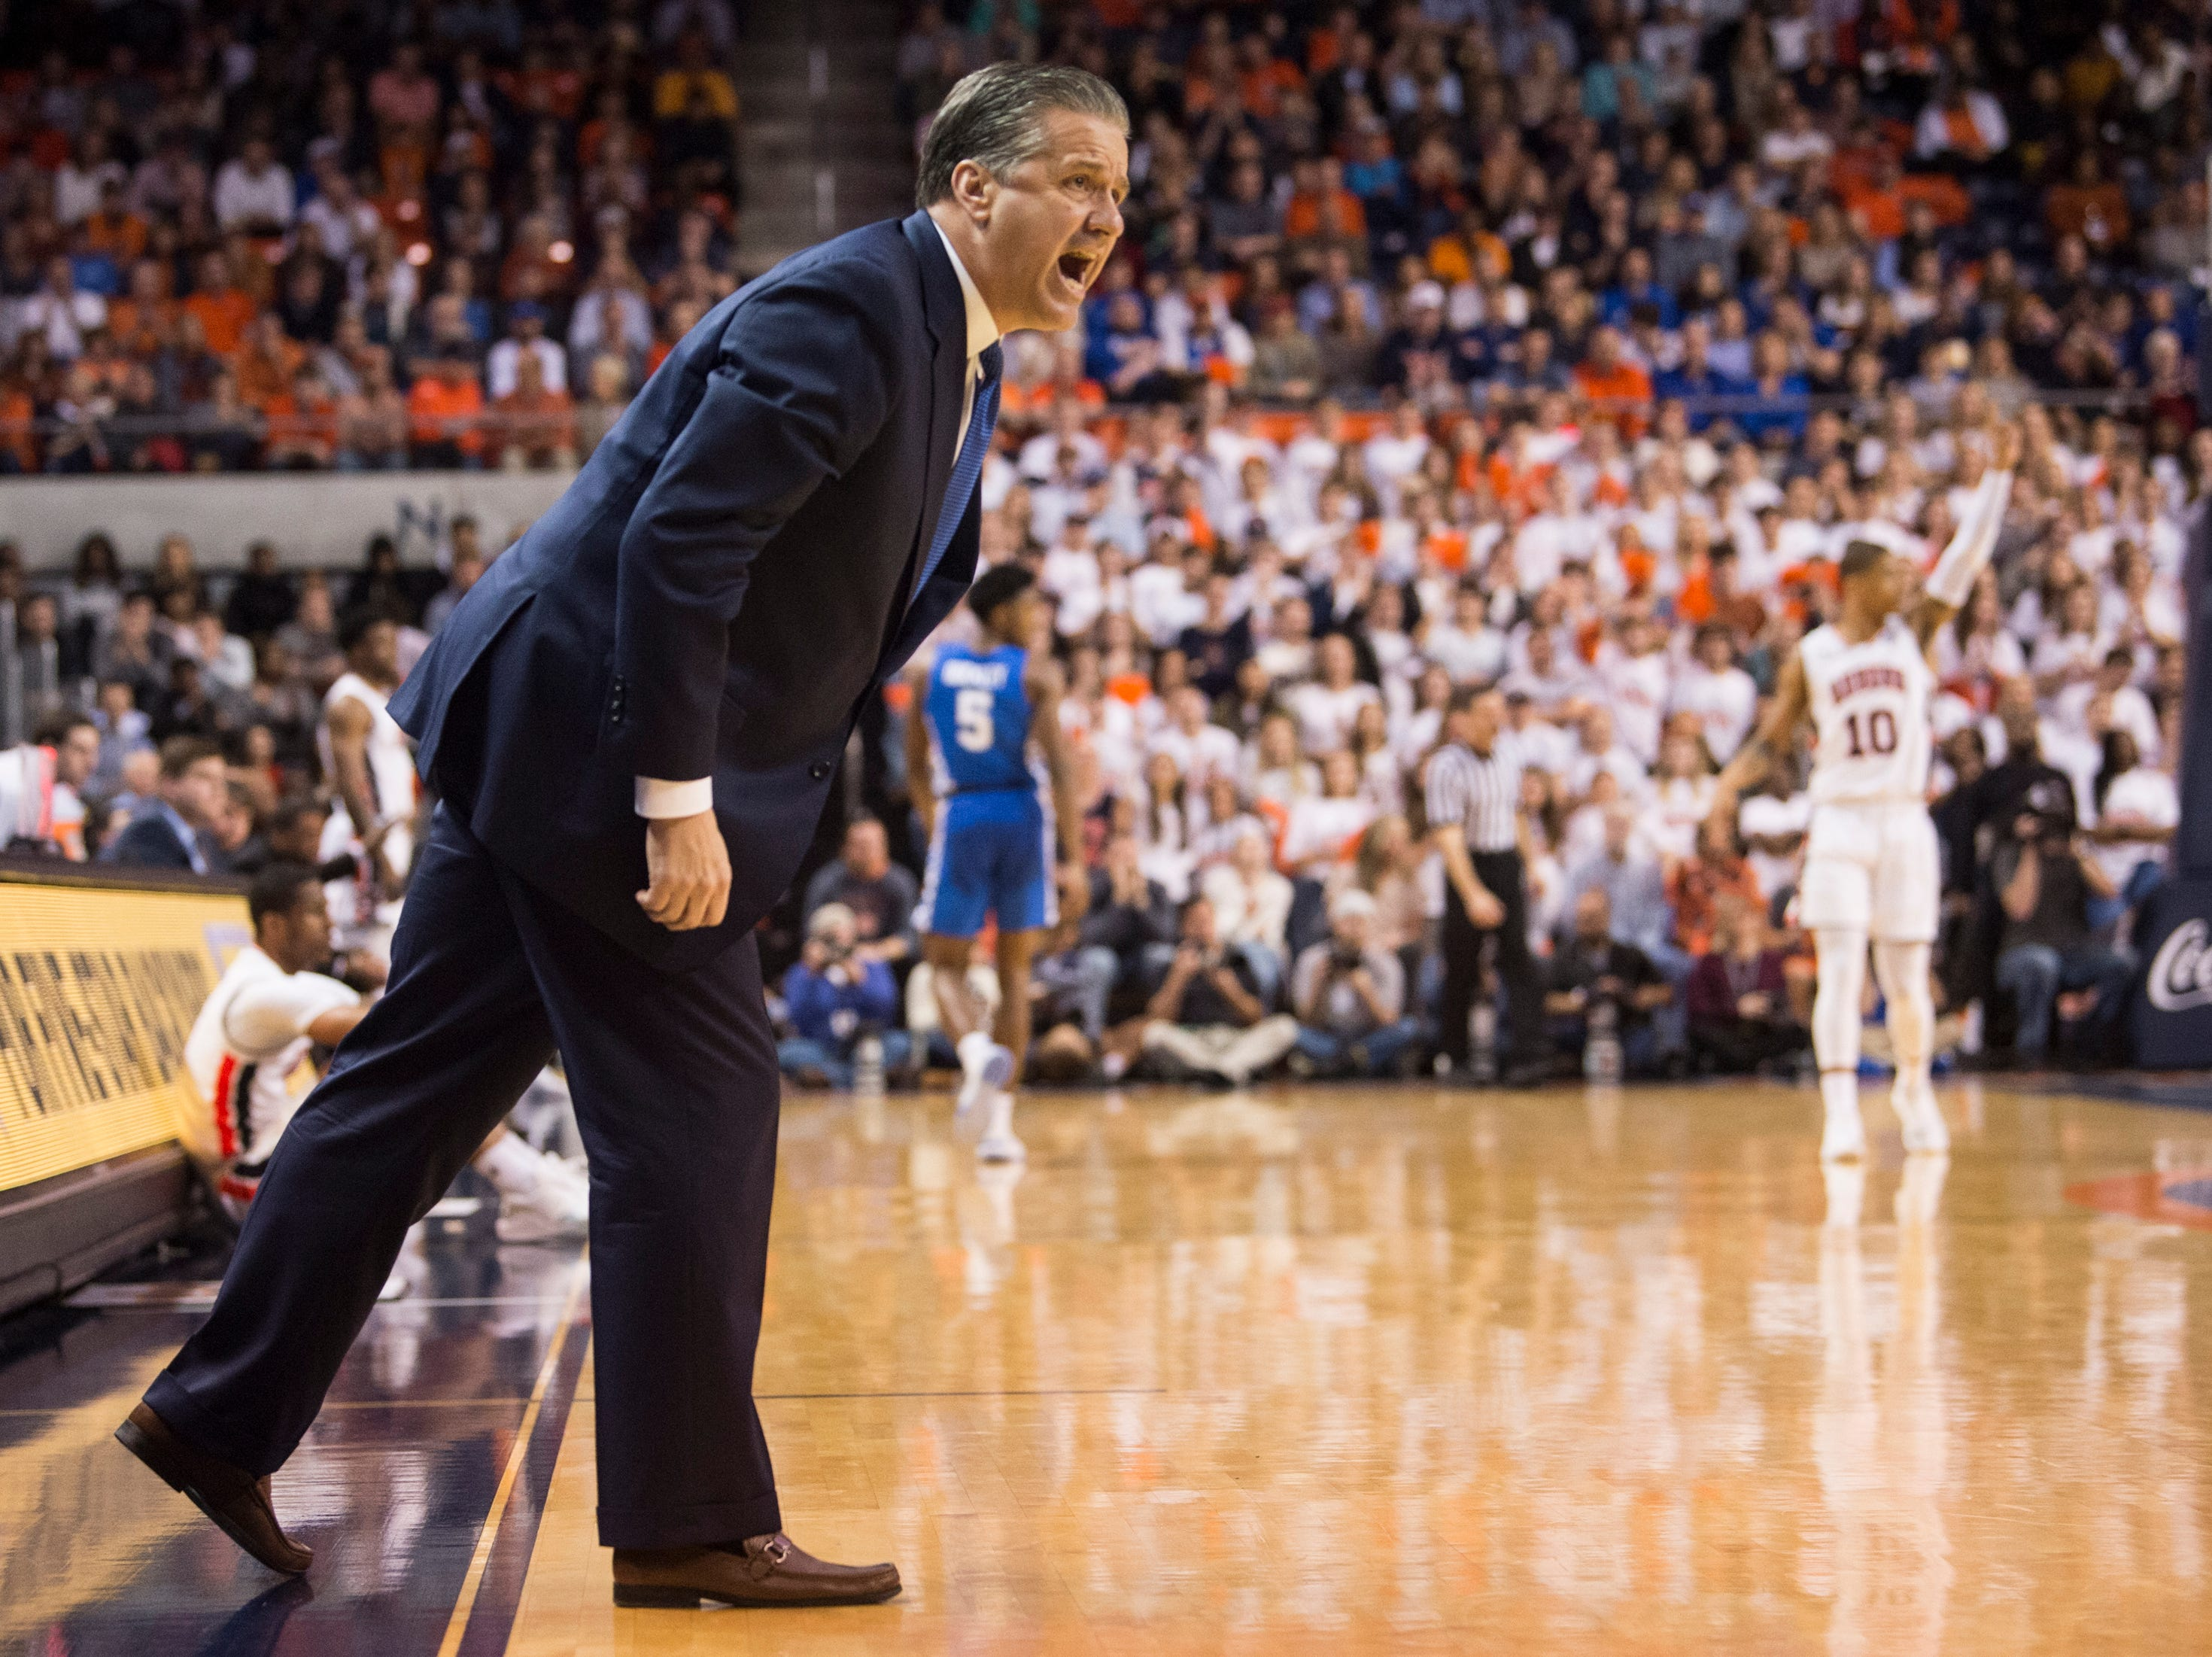 Kentucky head coach John Calipari yells at his team from the bench at Auburn Arena in Auburn, Ala., on Saturday, Jan. 19, 2019. Kentucky leads Auburn 35-27 at halftime.